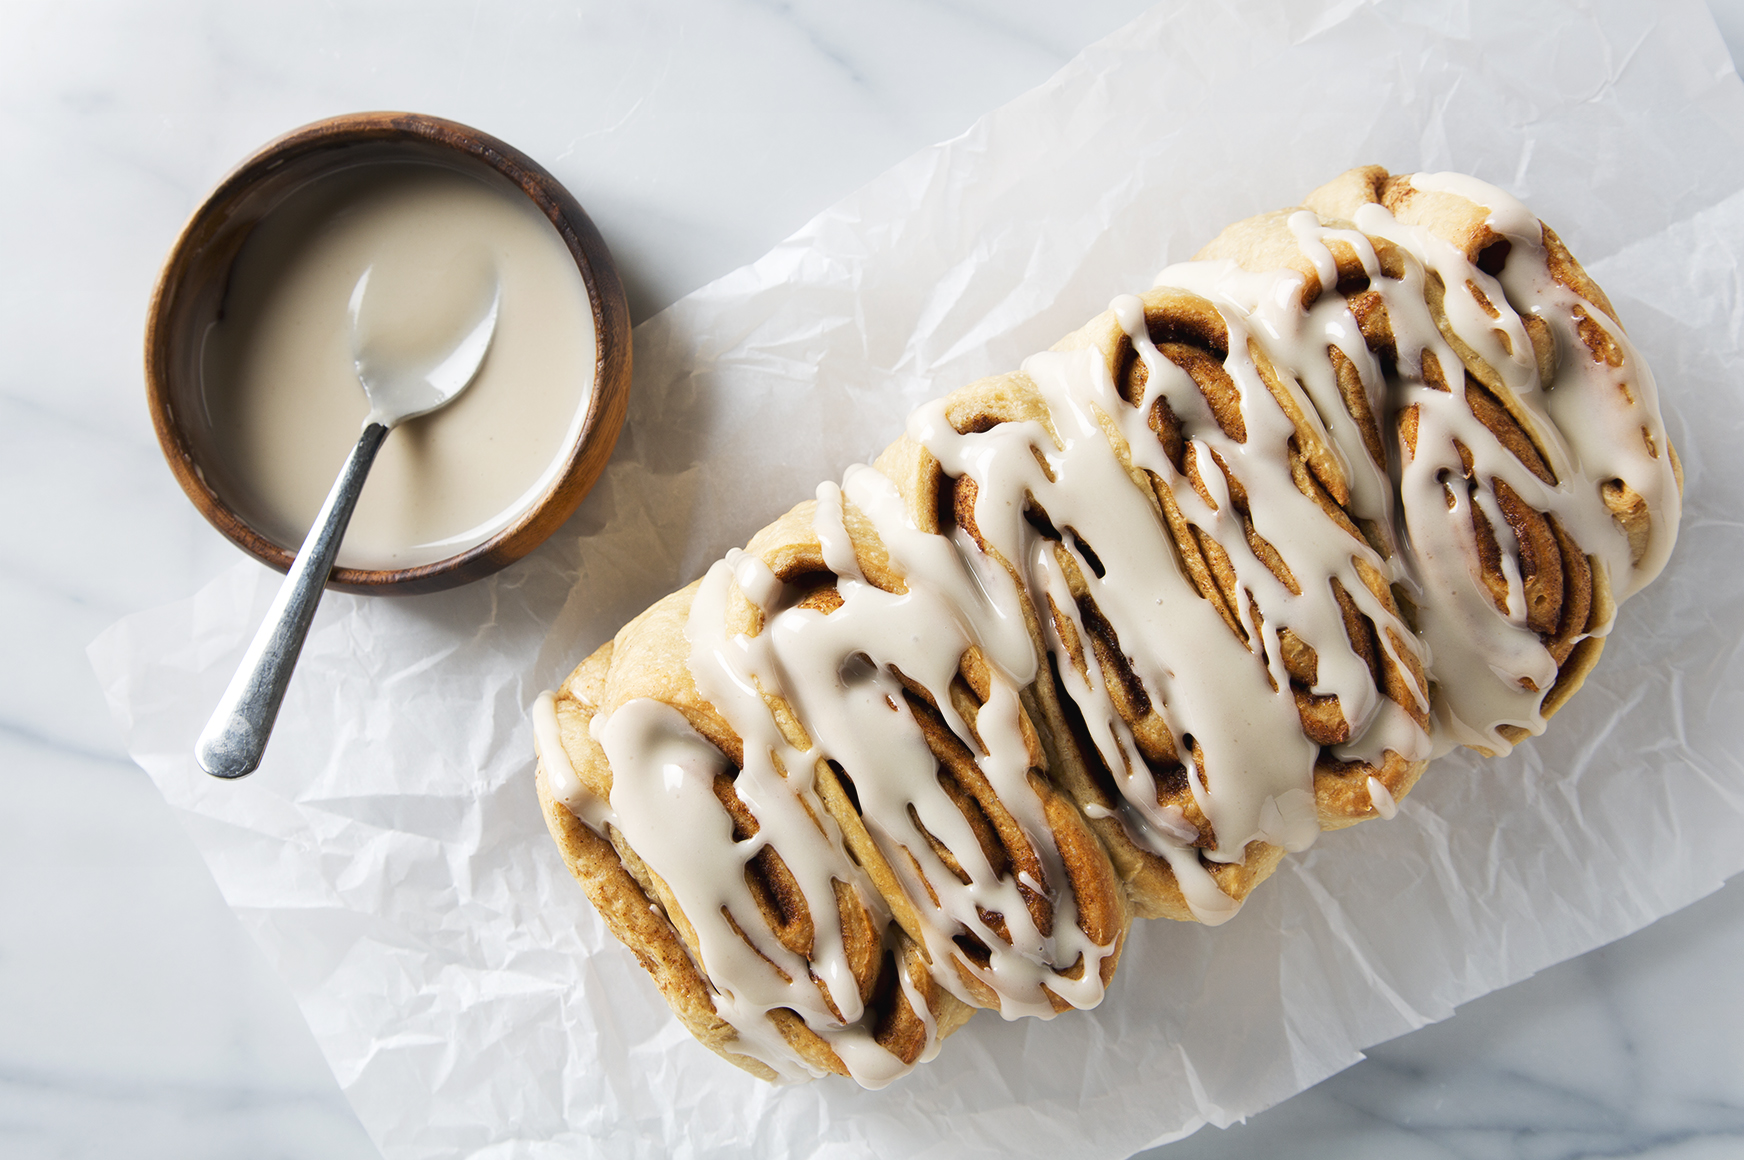 Vegan Cinnamon Roll Loaf | picklesnhoney.com #vegan #cinnamonroll #loaf #recipe #breakfast #brunch